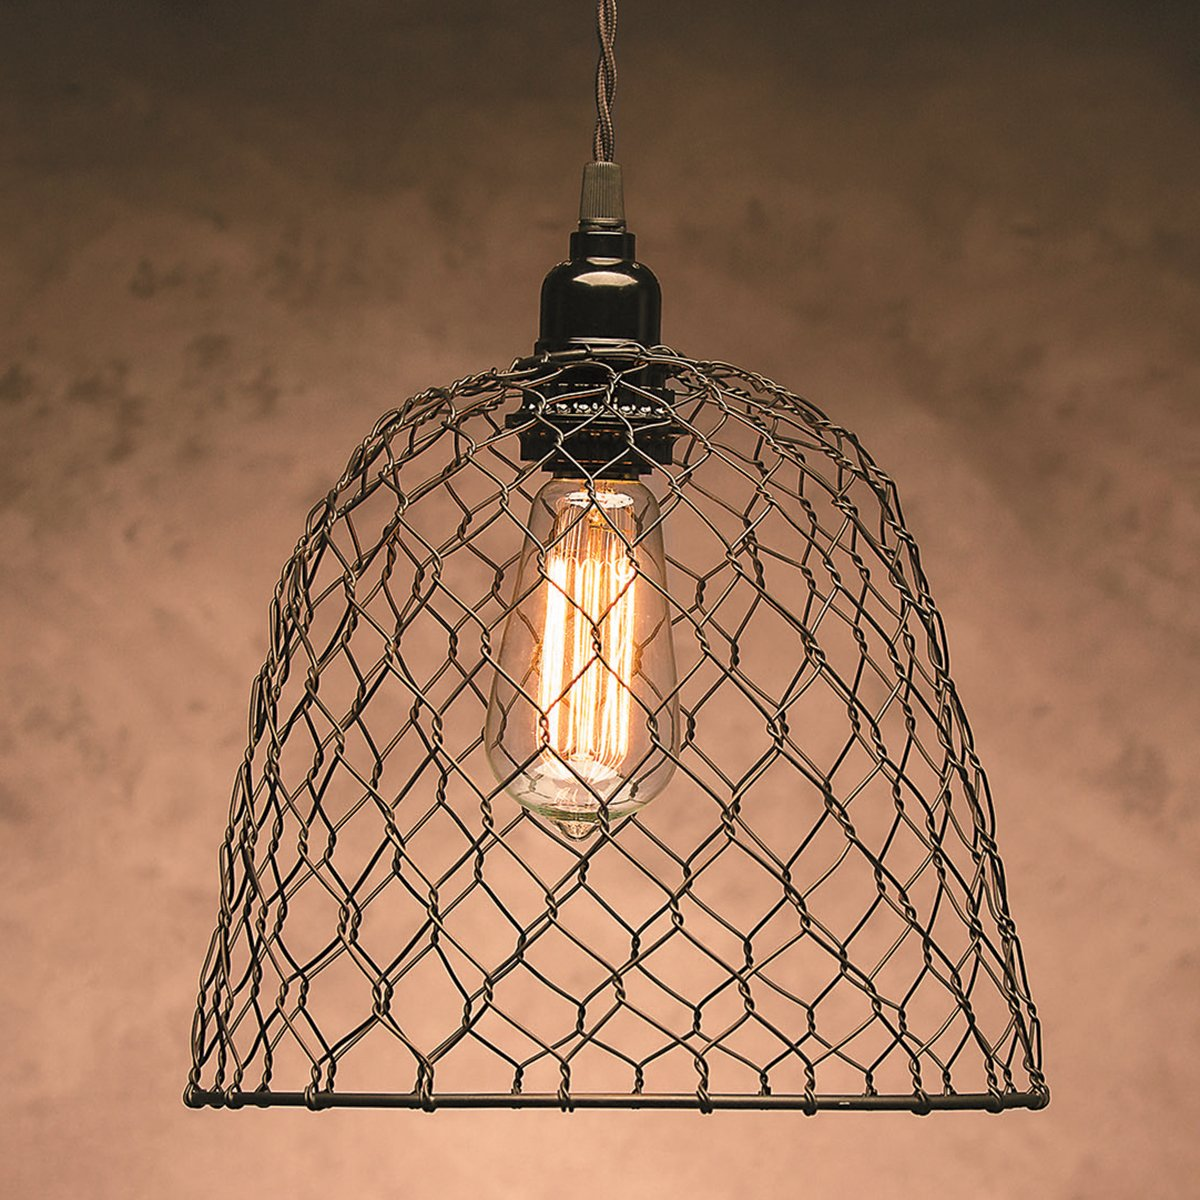 Cleveland Vintage Lighting 30397A Chicken Wire Shade, Metal, Dome 10 x 8.25 inches, Black